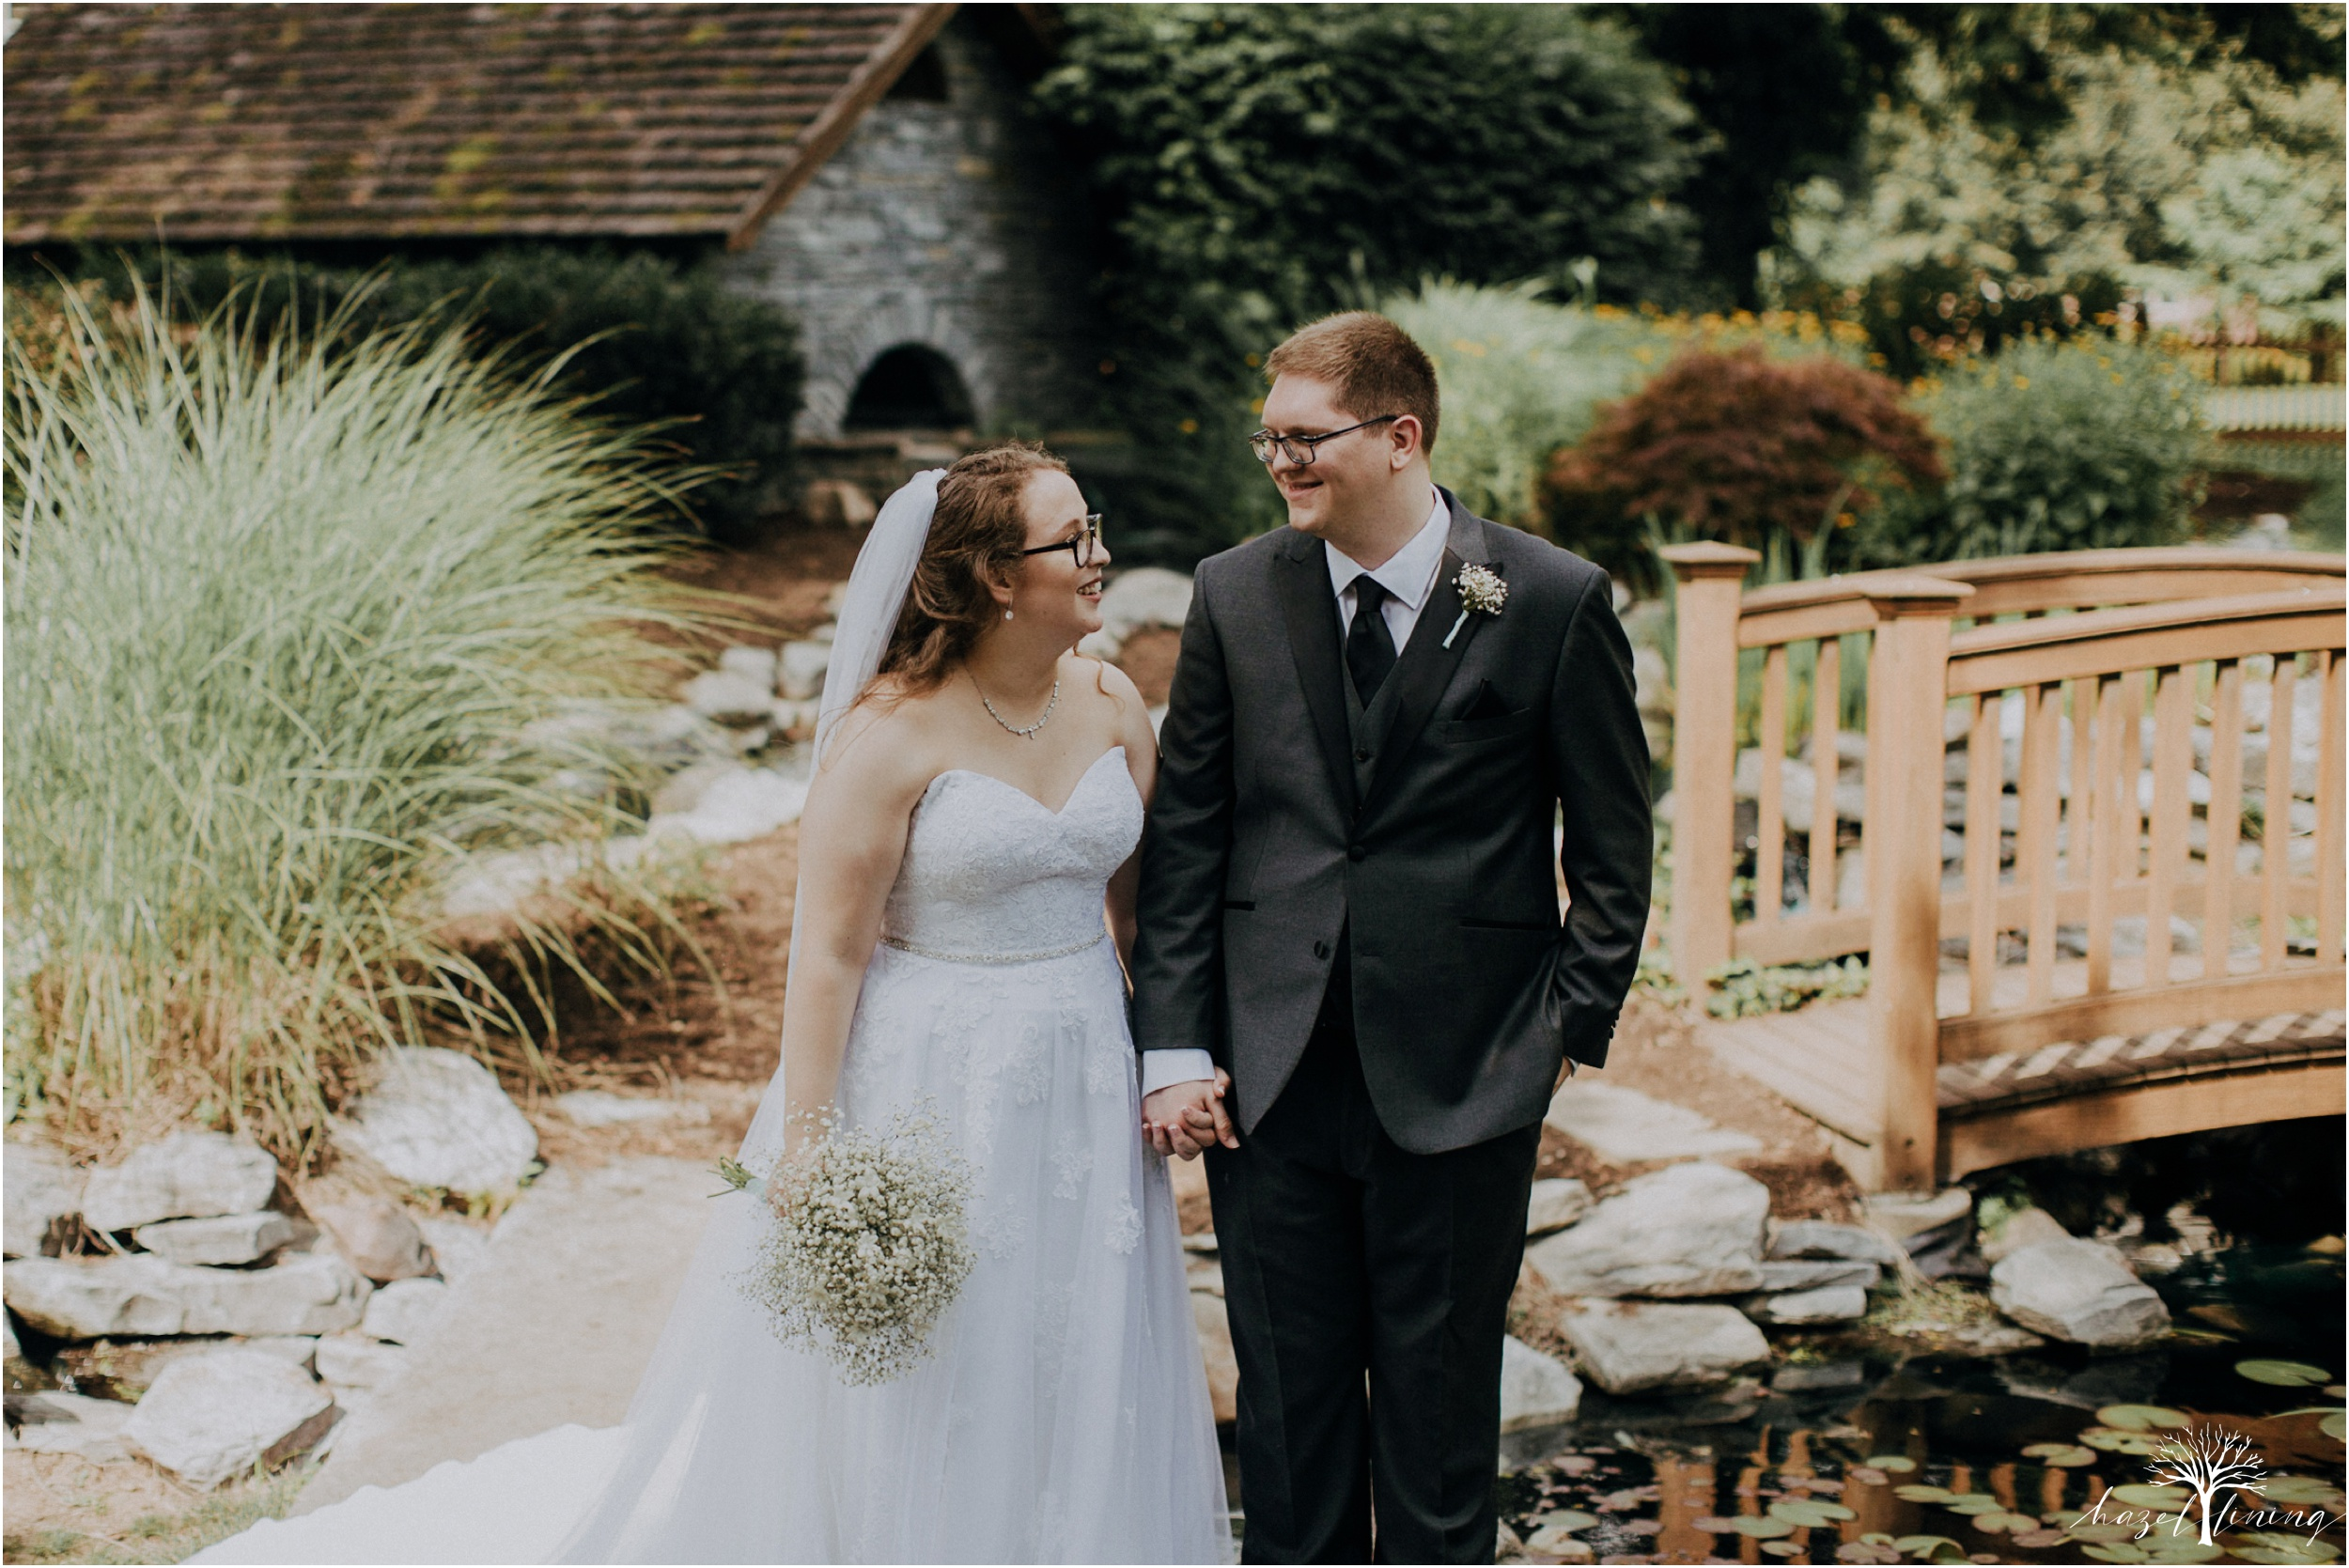 laura-zach-mccaskill-harmony-hall-lebanon-valley-college-summer-wedding-hazel-lining-photography-destination-elopement-wedding-engagement-photography_0092.jpg